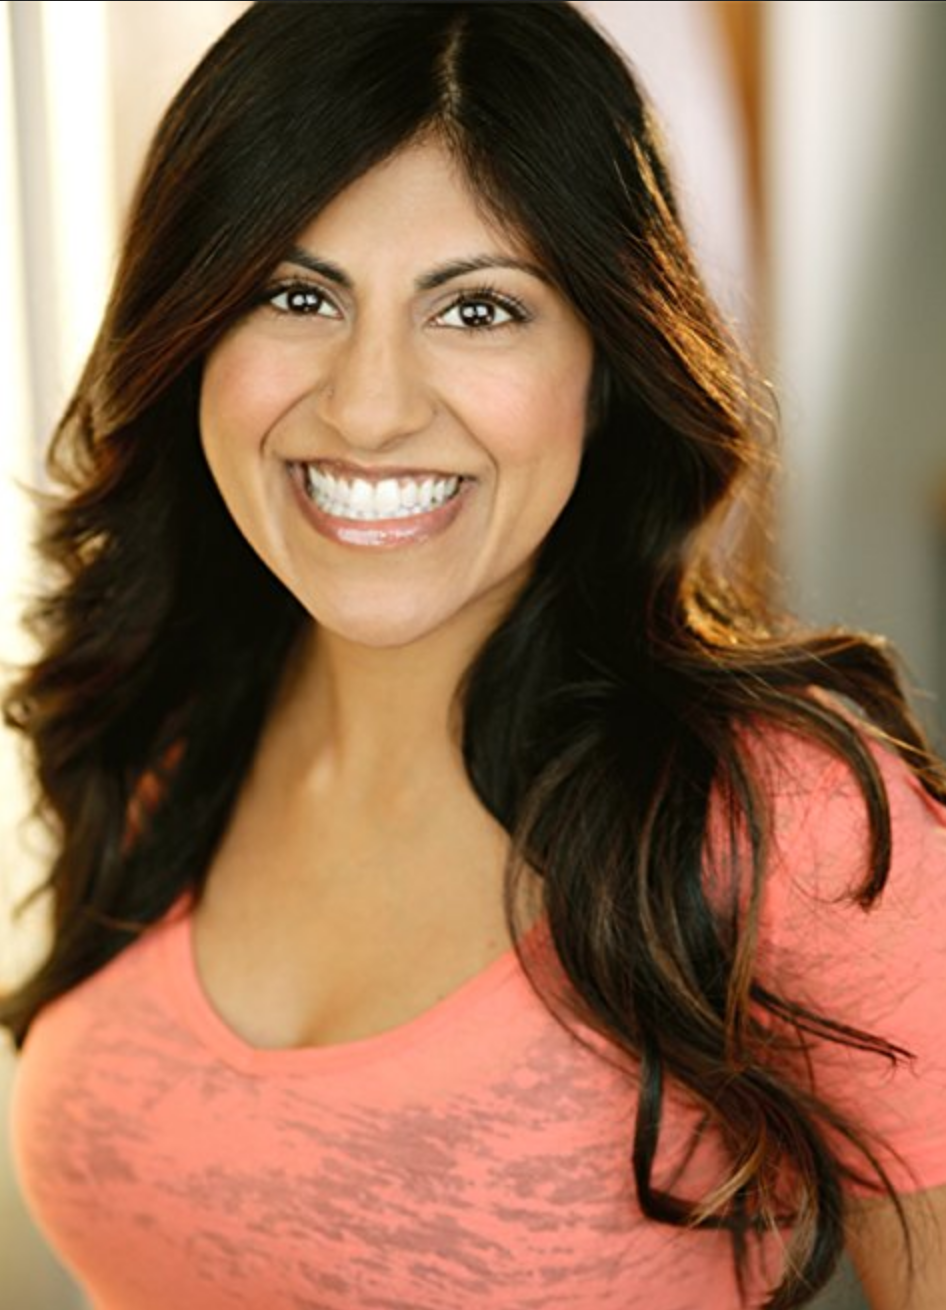 Shawlini Manjunath-Holbrook, Louie - I just coached with Maggie for a pilot audition and totally killed it largely due to her guidance! Maggie can break down a script and scene like no other and coaching with her is fast and effective. I felt like she helped me make choices and come up with ideas that really worked for the scene, but more importantly for me personally as an actor. Next time you have an audition, definitely make sure to coach with Maggie!